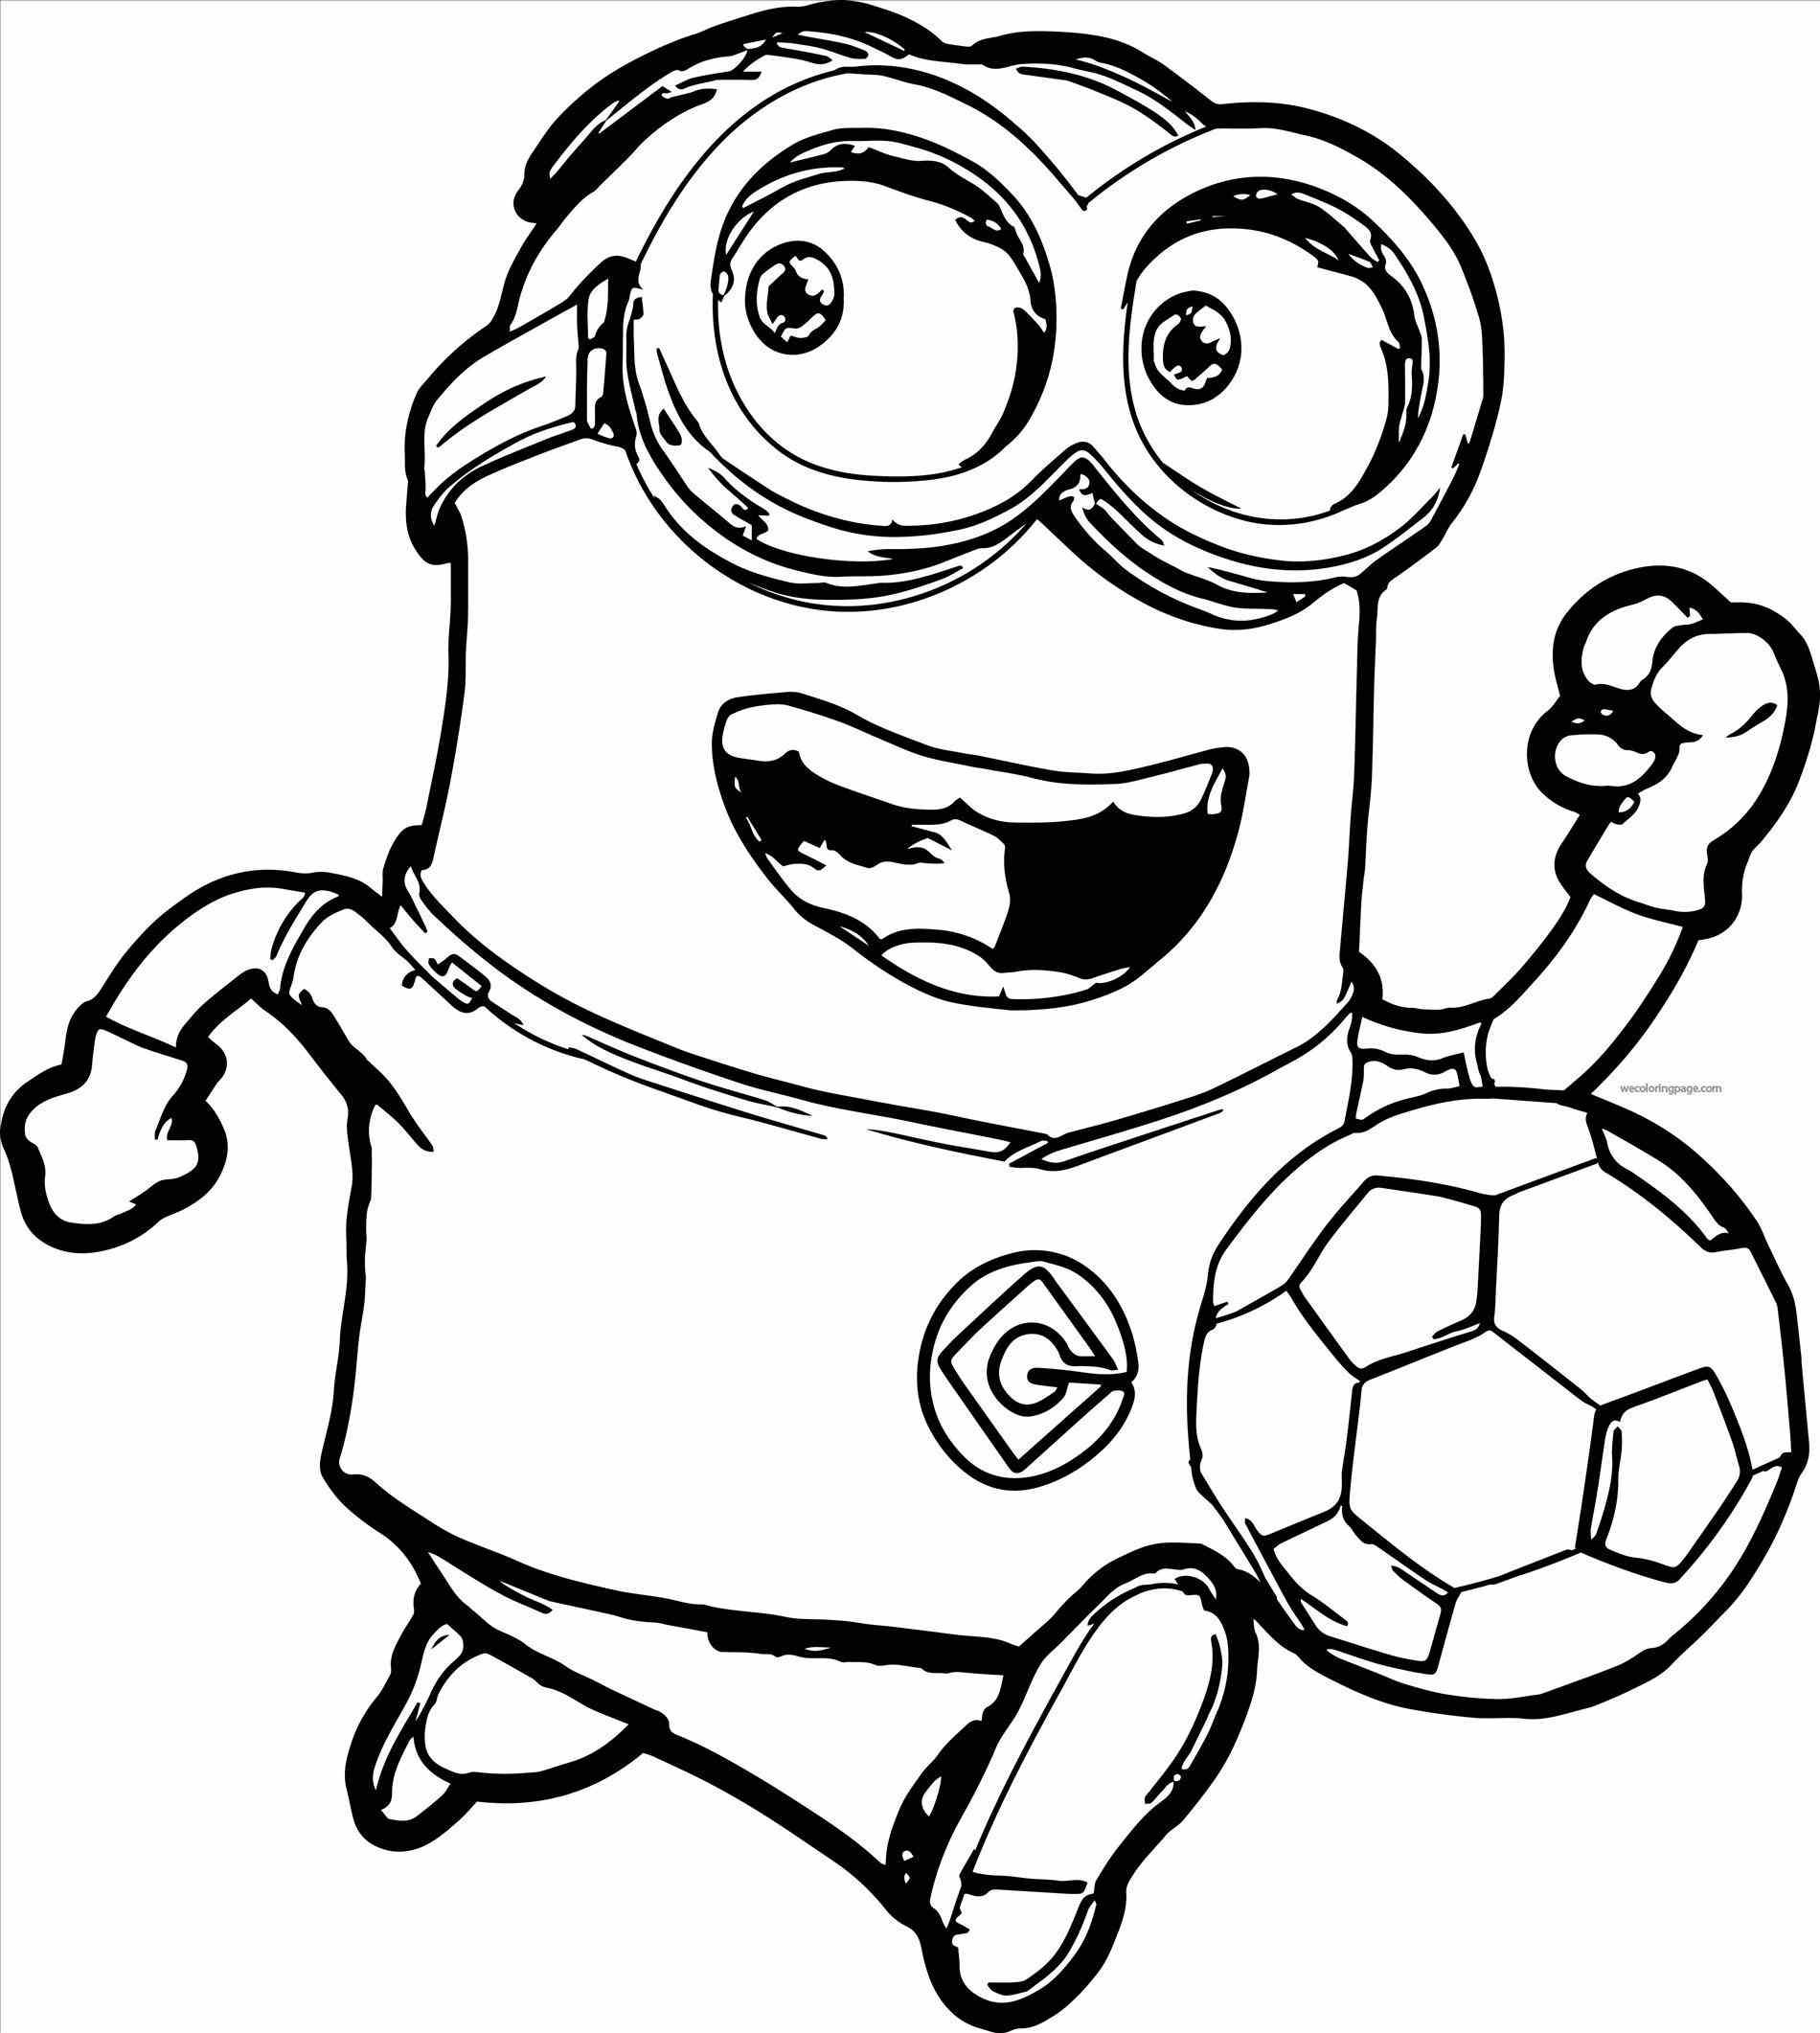 barcelona soccer team coloring pages